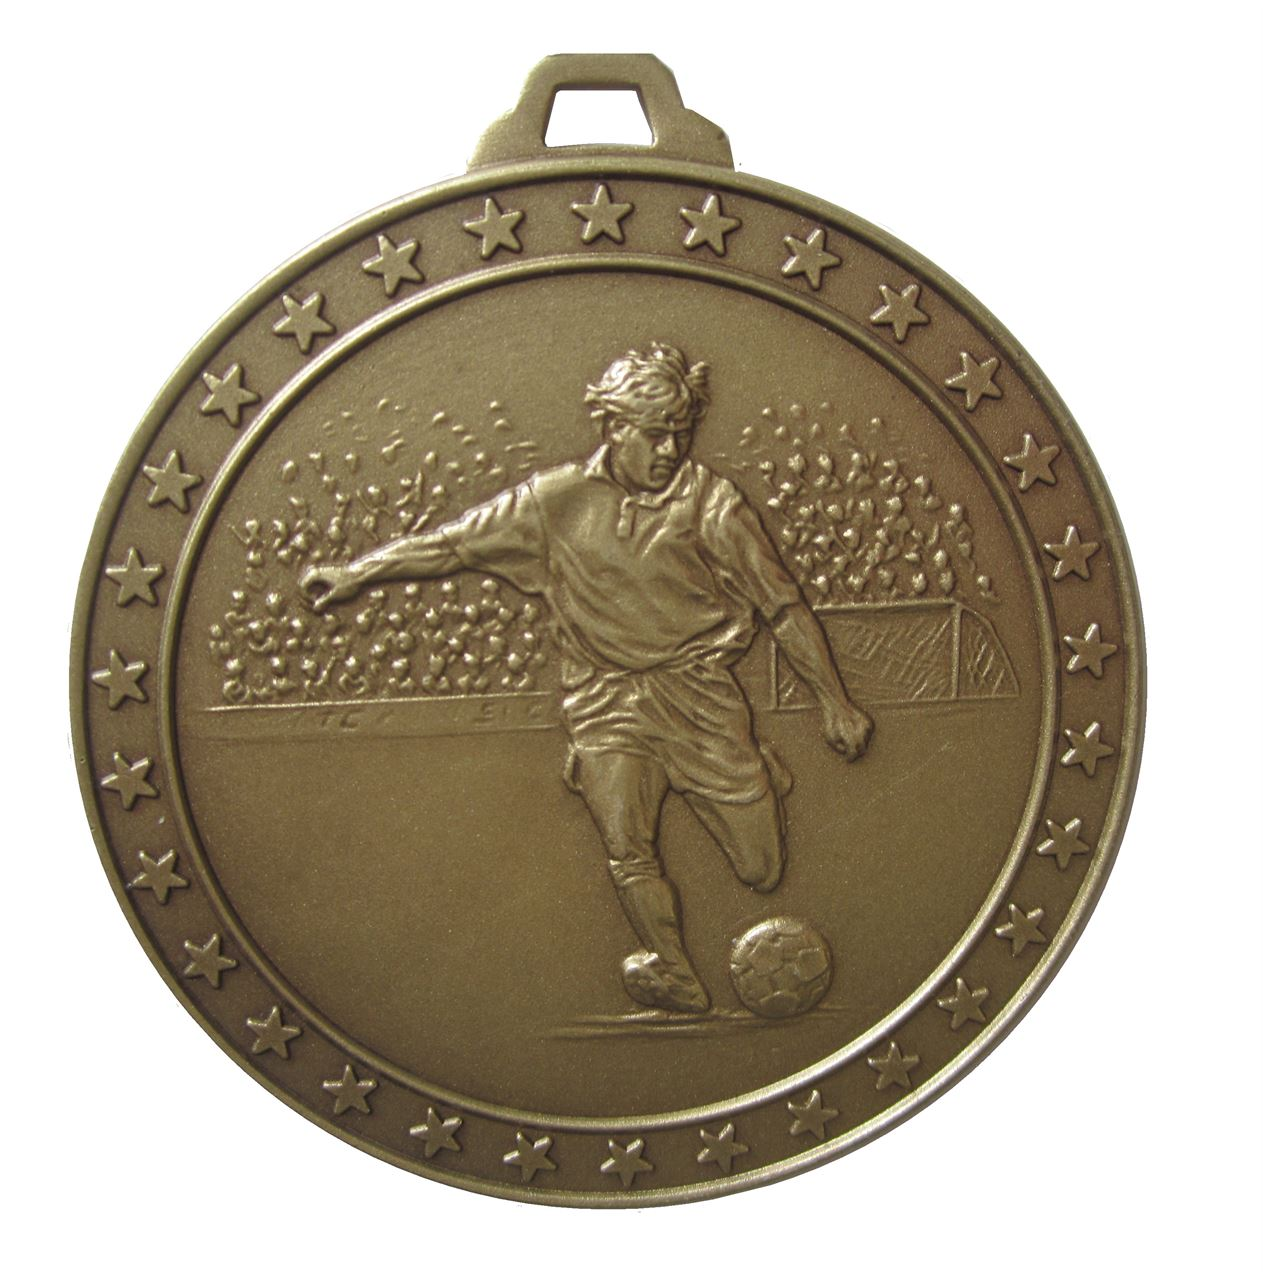 Bronze Economy Football Star Medal (size: 60mm) - 434E